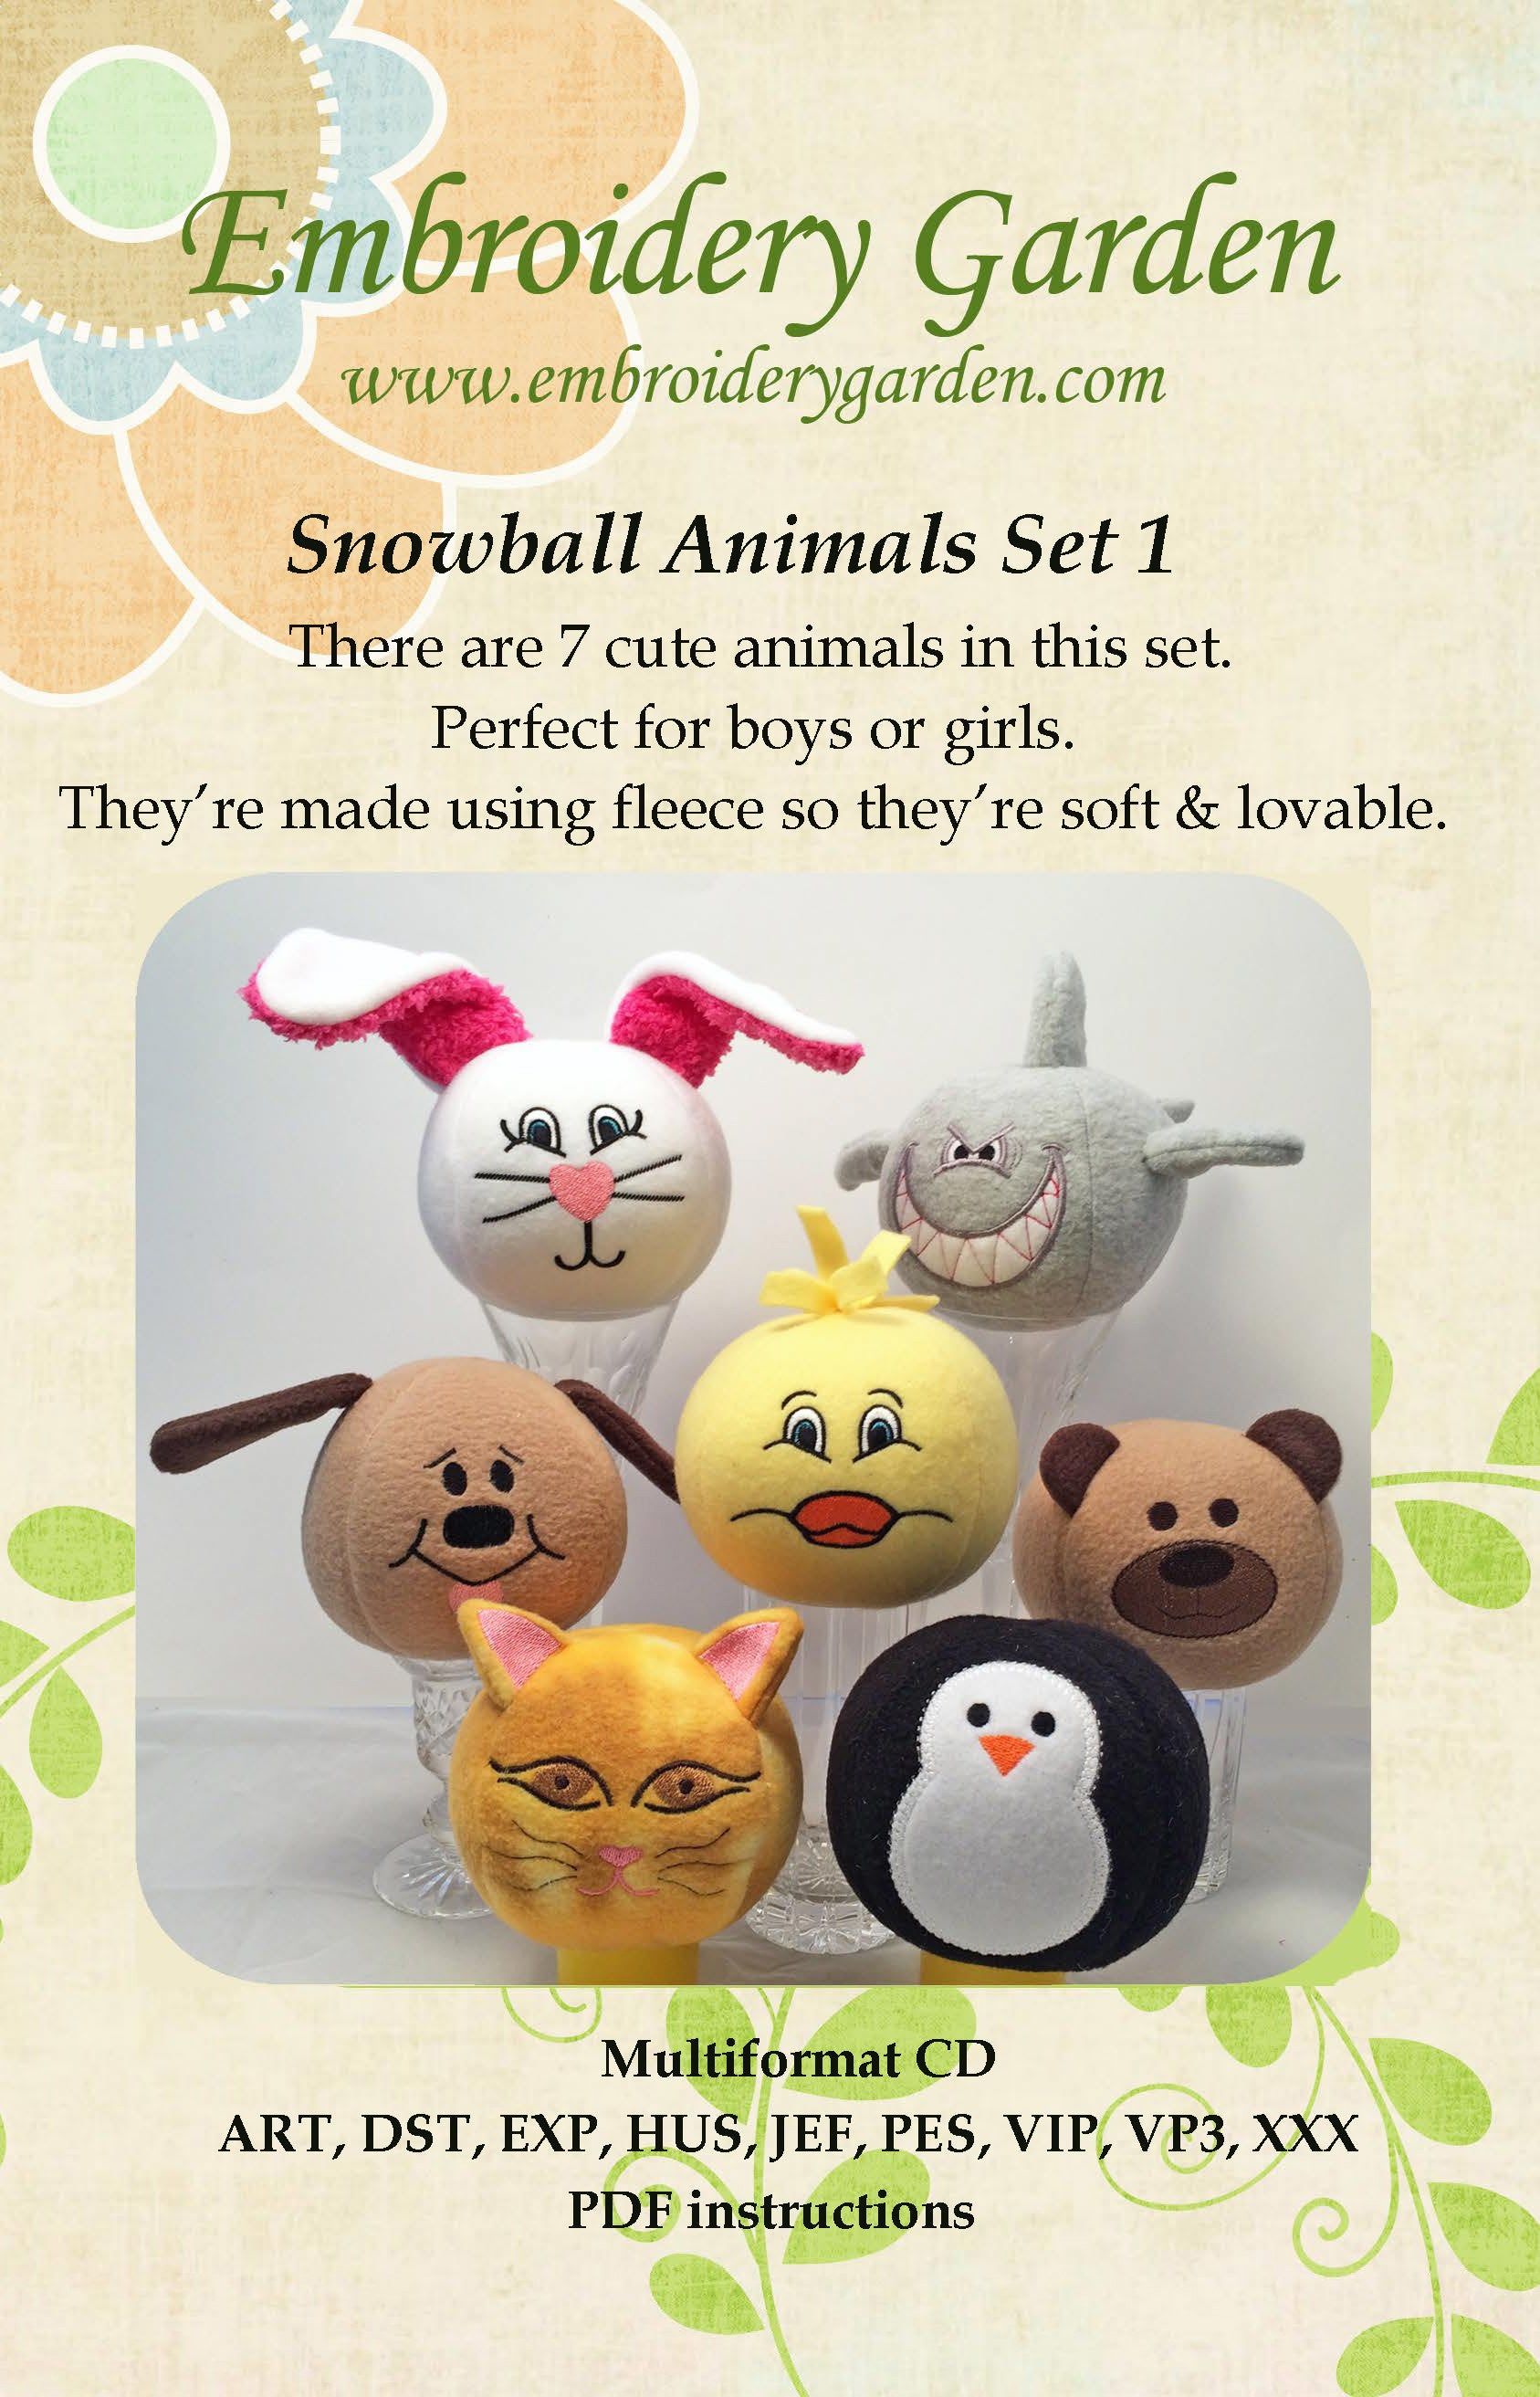 Embroidery Garden Snowball Animals Set 1 Tops Sewing Quilting Outlet